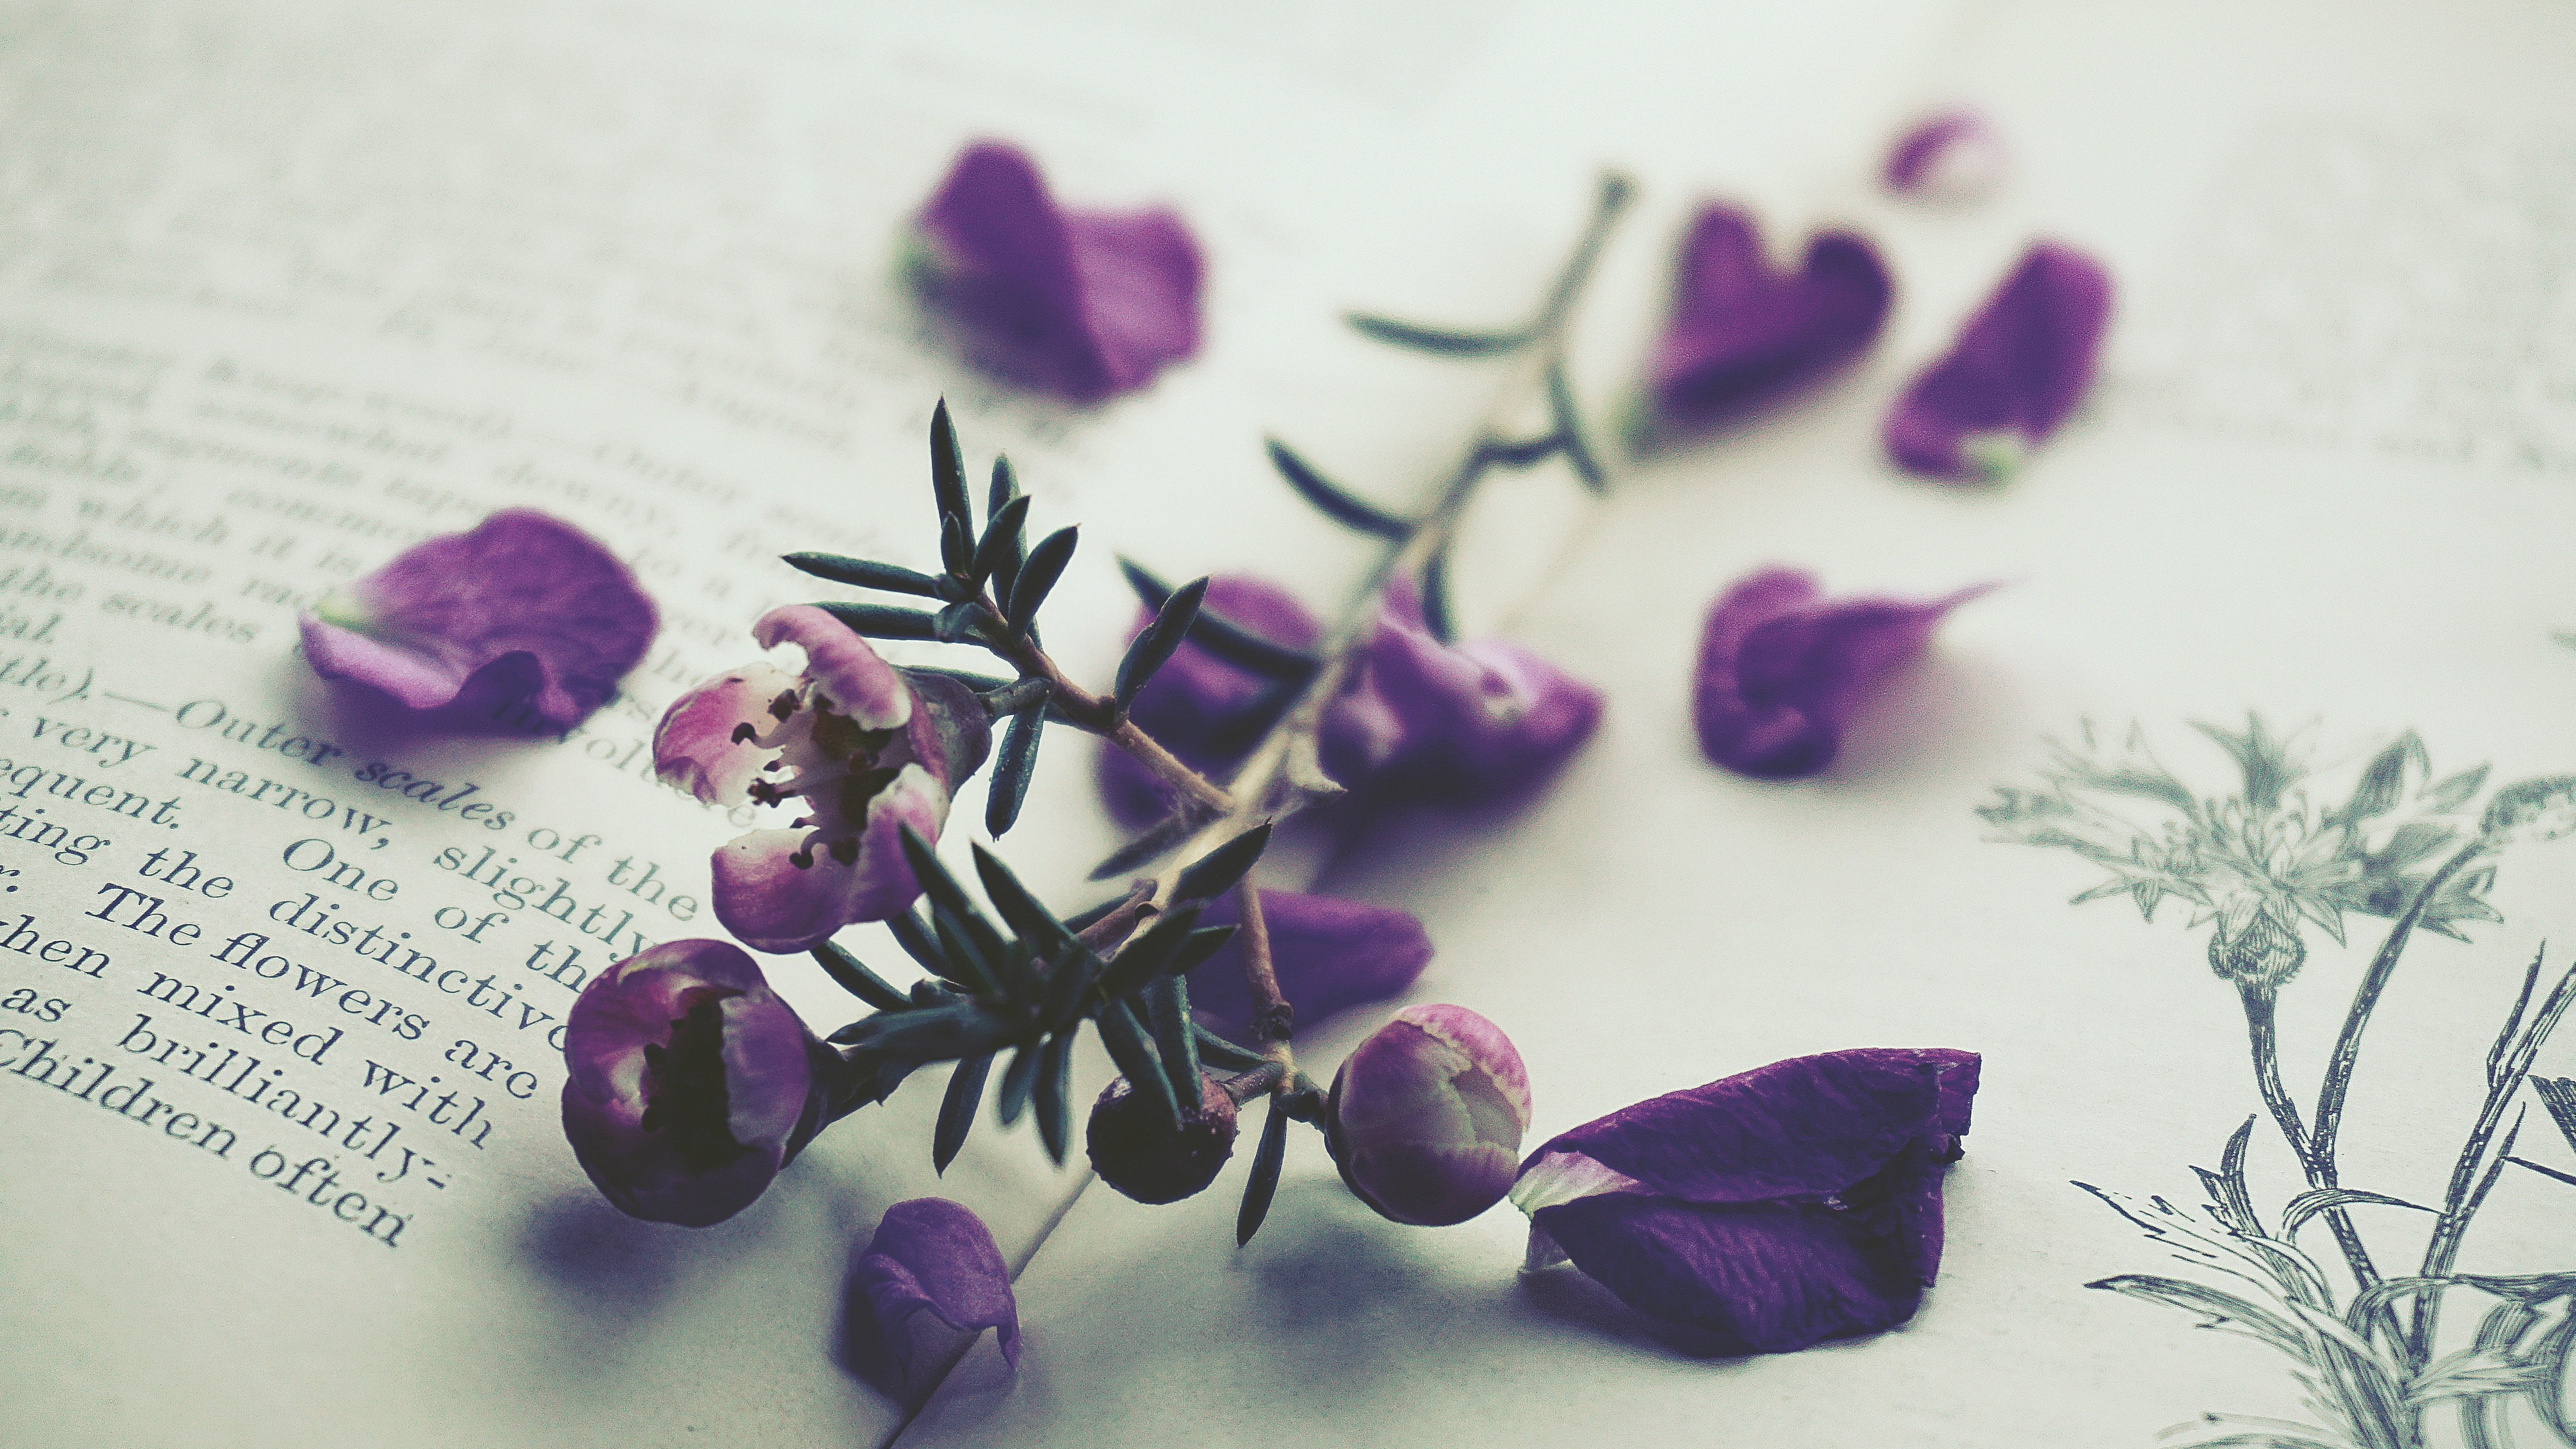 Purple-petaled Flowers on Opened Book